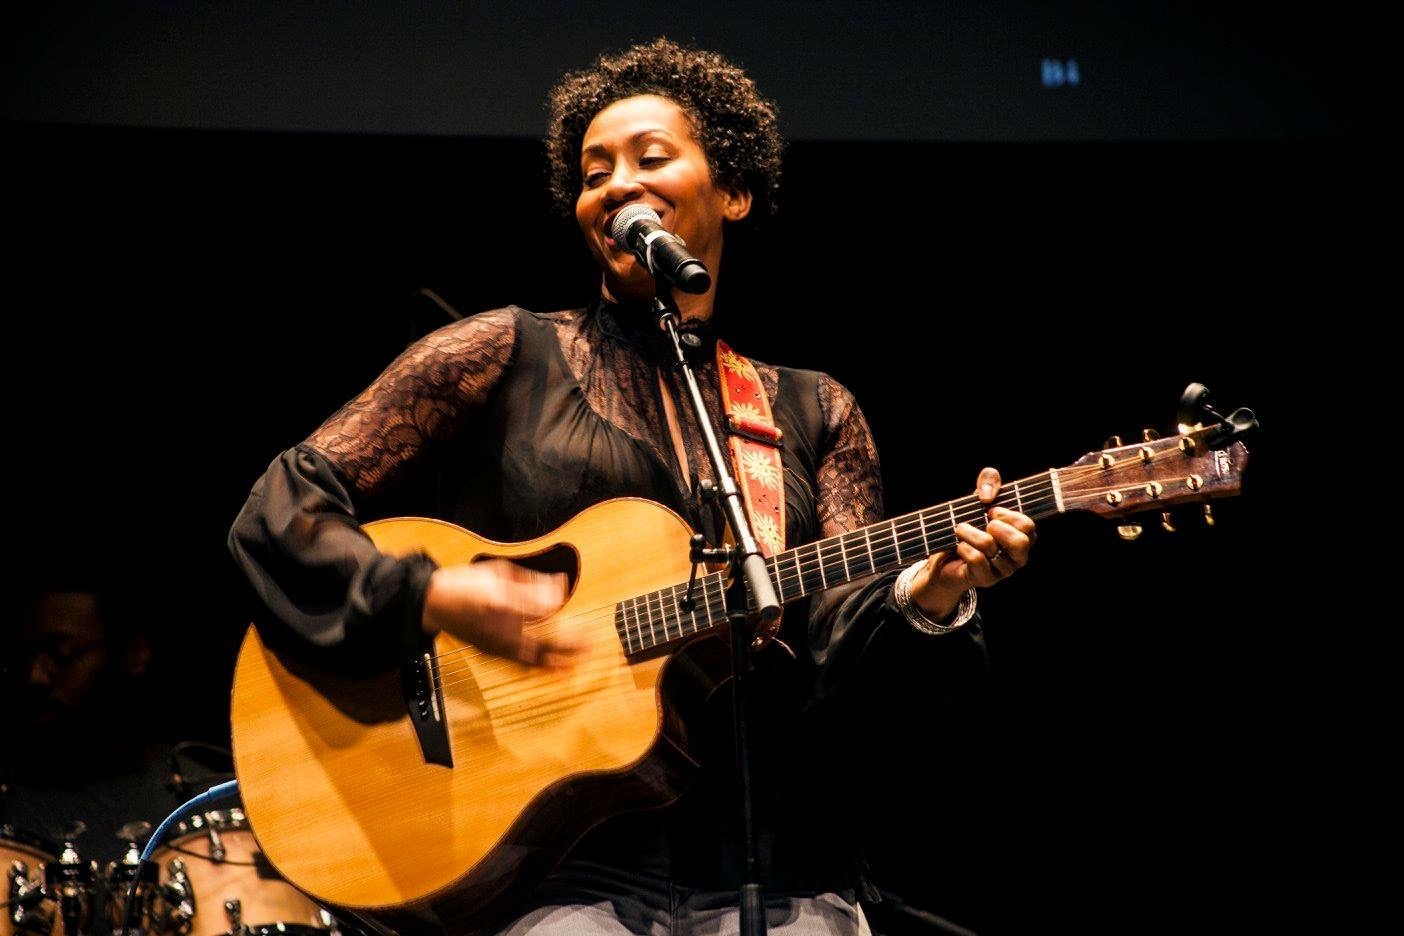 A woman sings into a microphone and plays guitar